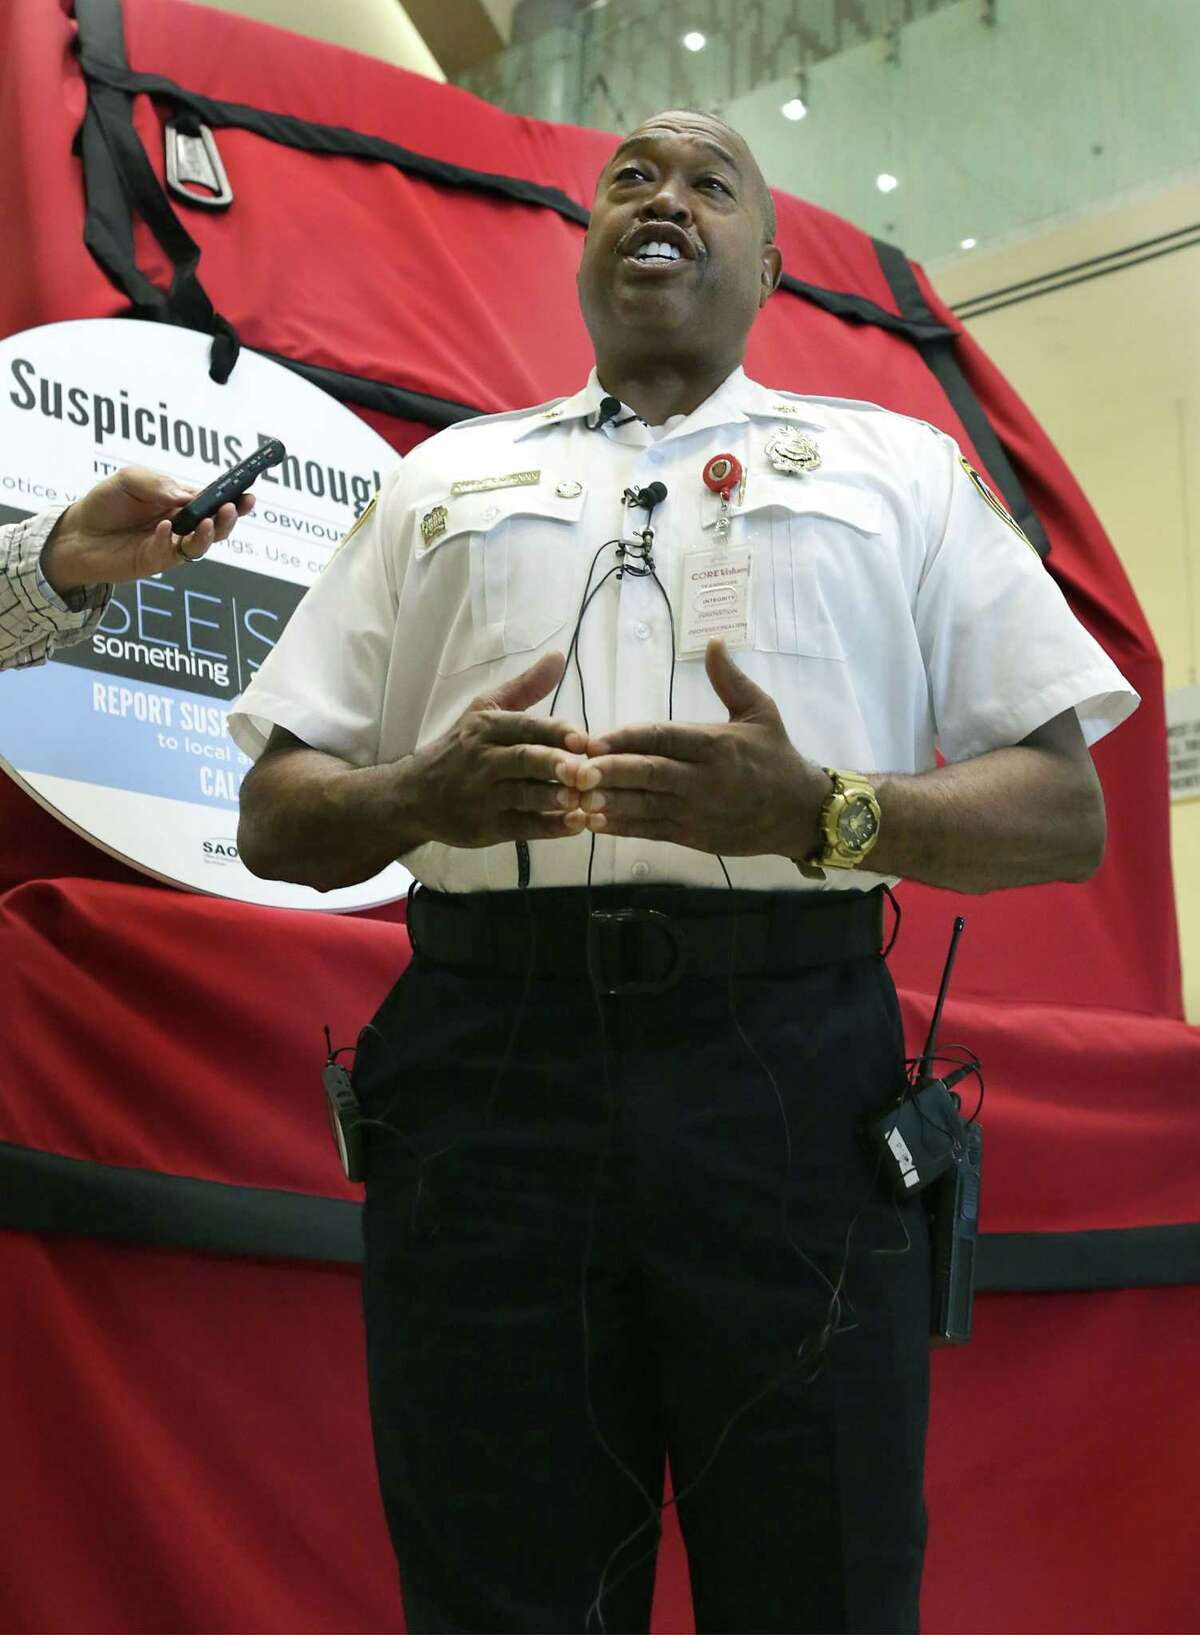 Fire Chief Charles Hood, standing in front of a giant backpack display, discusses safety issues during the upcoming Final Four, with the media during a press conference on Monday, March 26, 2018, at the Henry B. Gonzalez Convention Center.